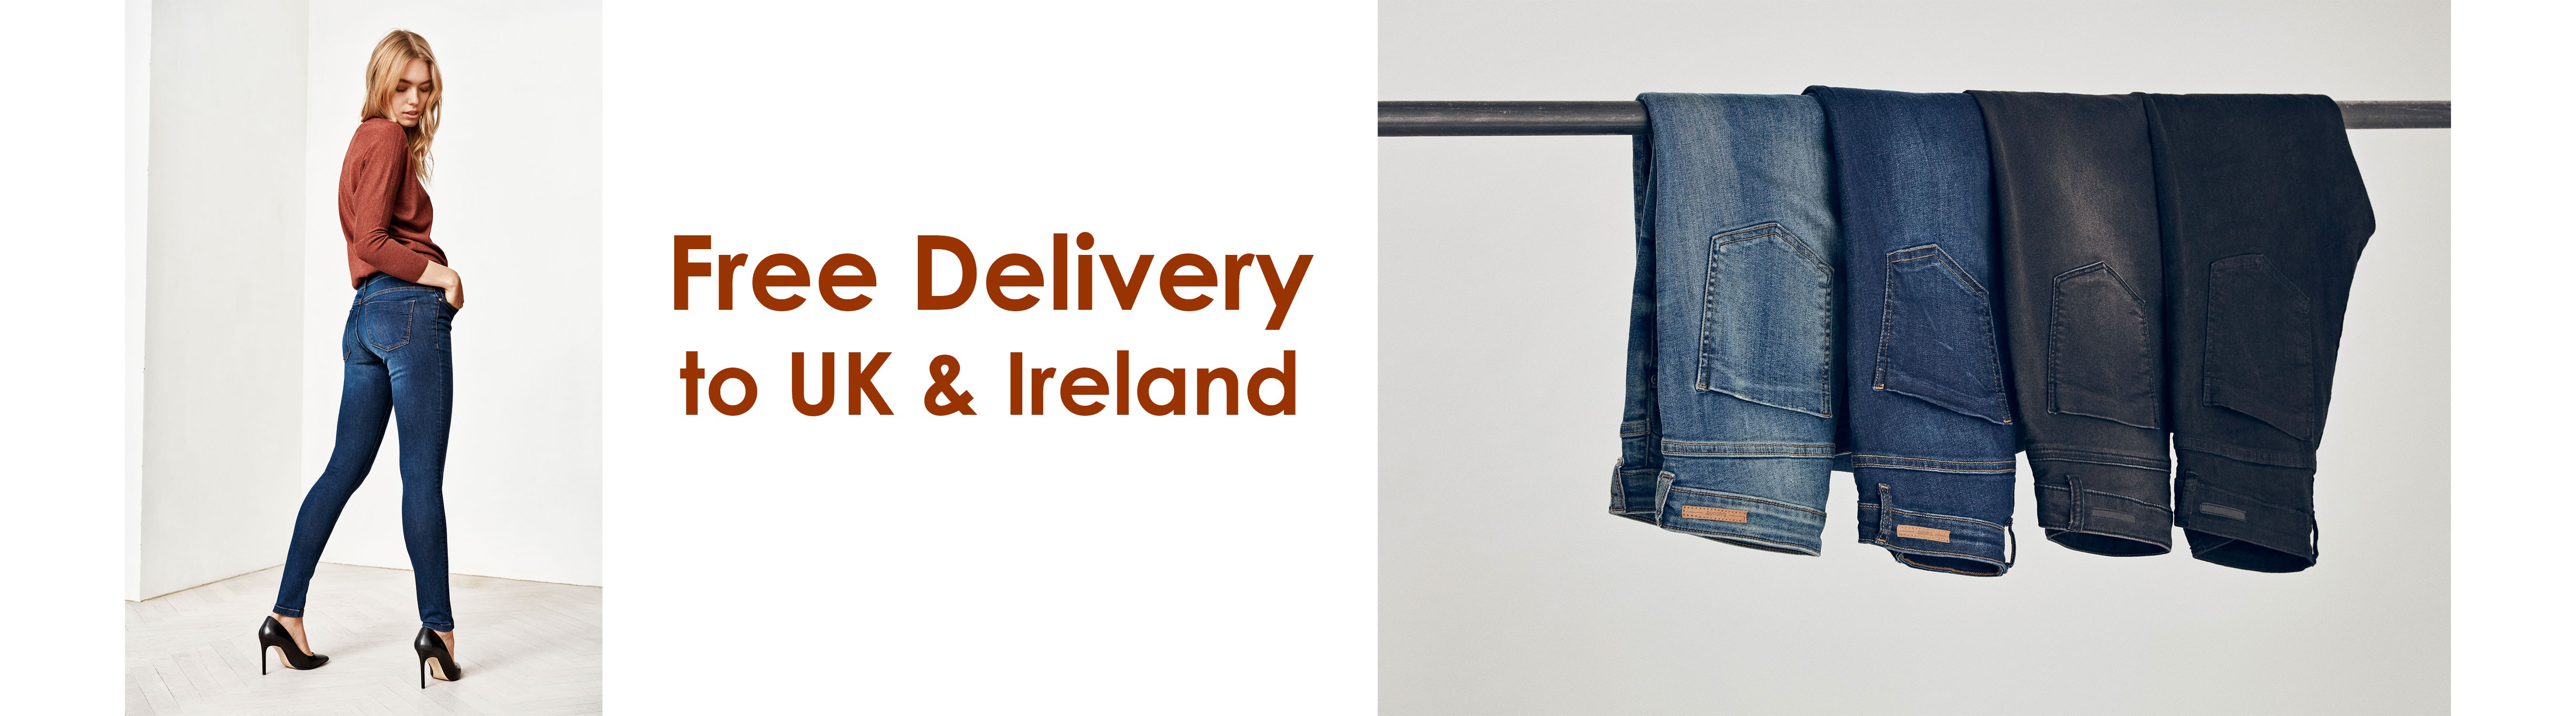 Belle De Paris Boutique - Shop Jeans and Trousers - Worldwide Delivery available - Free Delivery to UK and Ireland